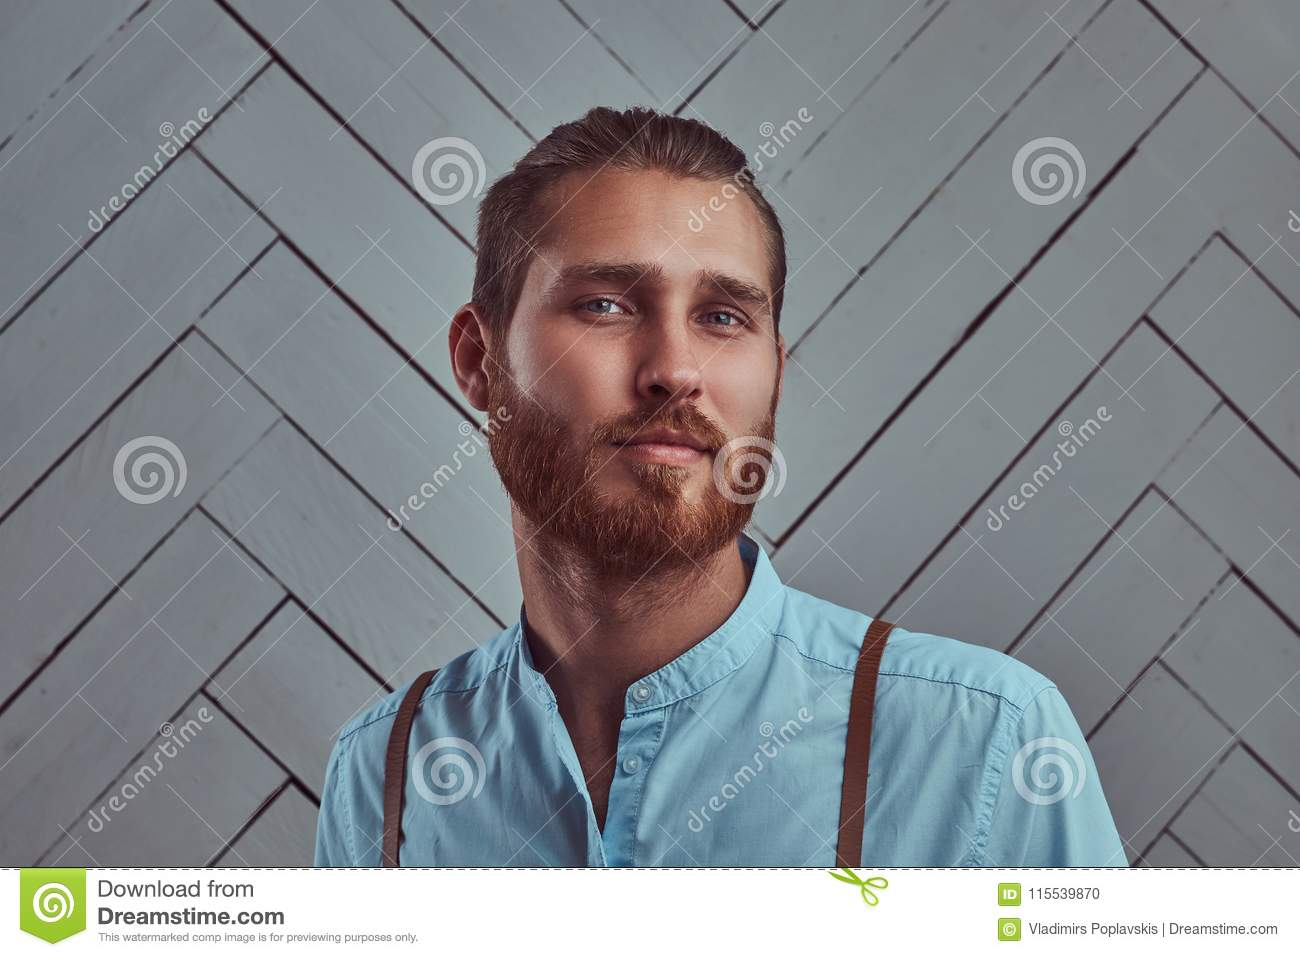 Handsome young retro stylish redhead man in suspenders posing against a white wall in a studio.